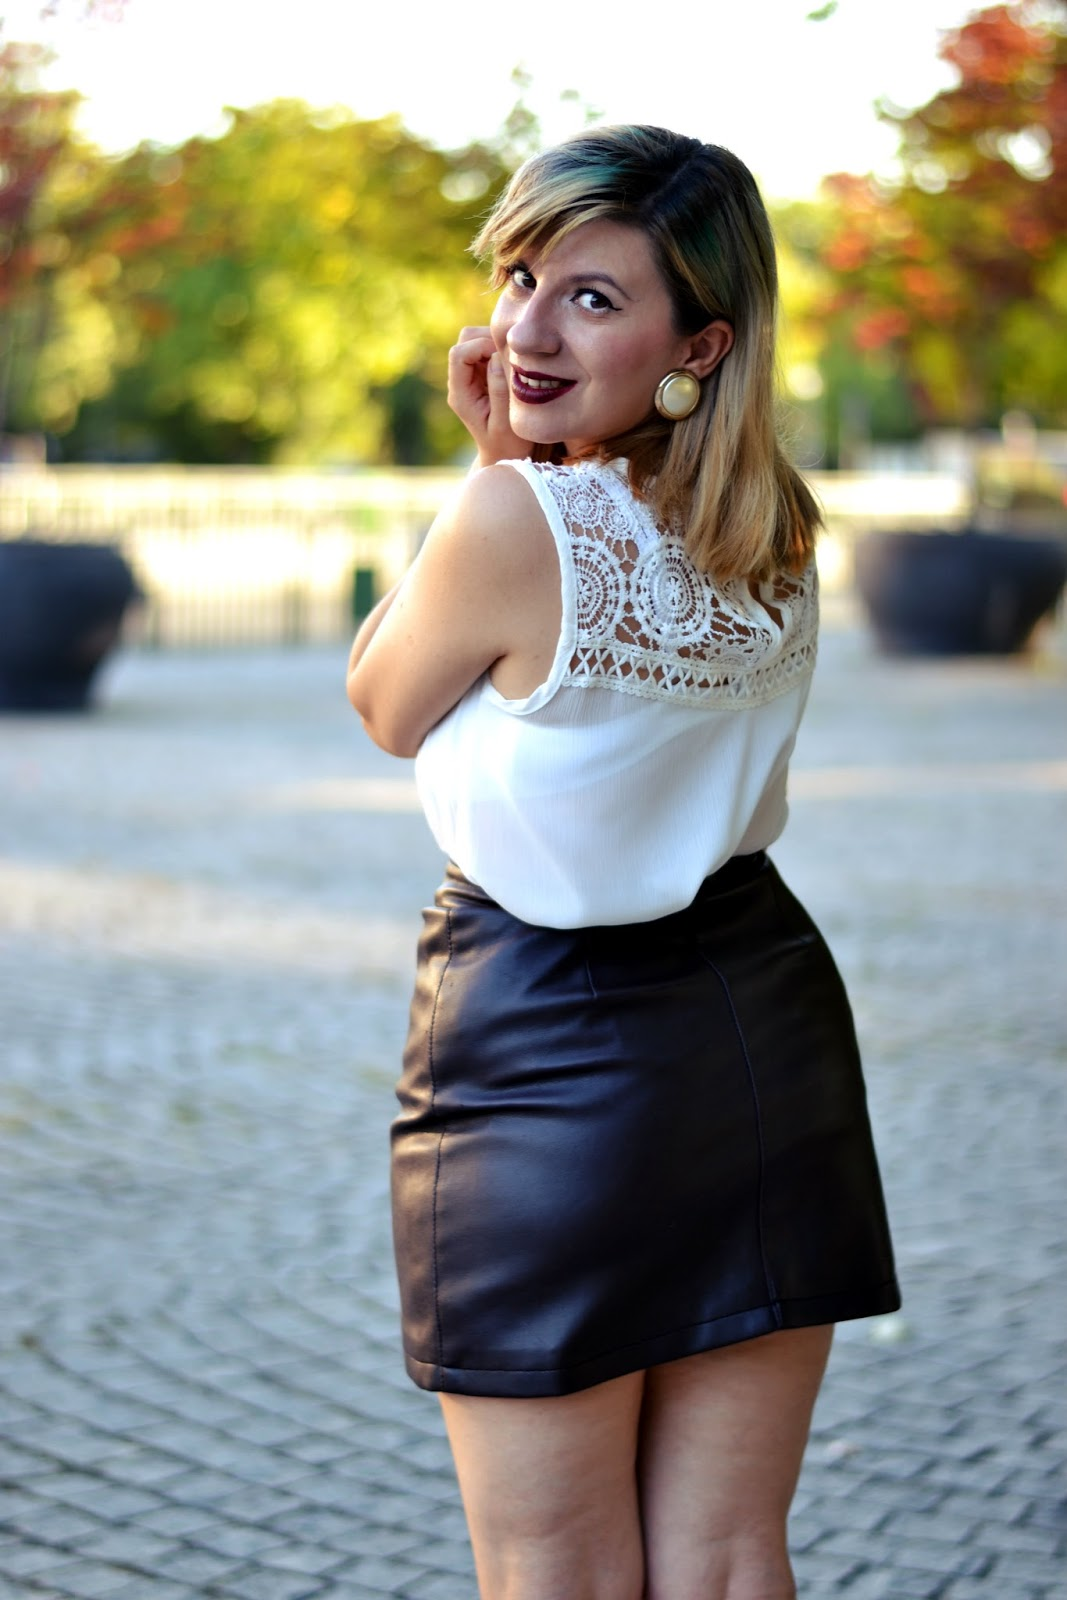 Leather mini skirt instagram | Global trend skirt blog